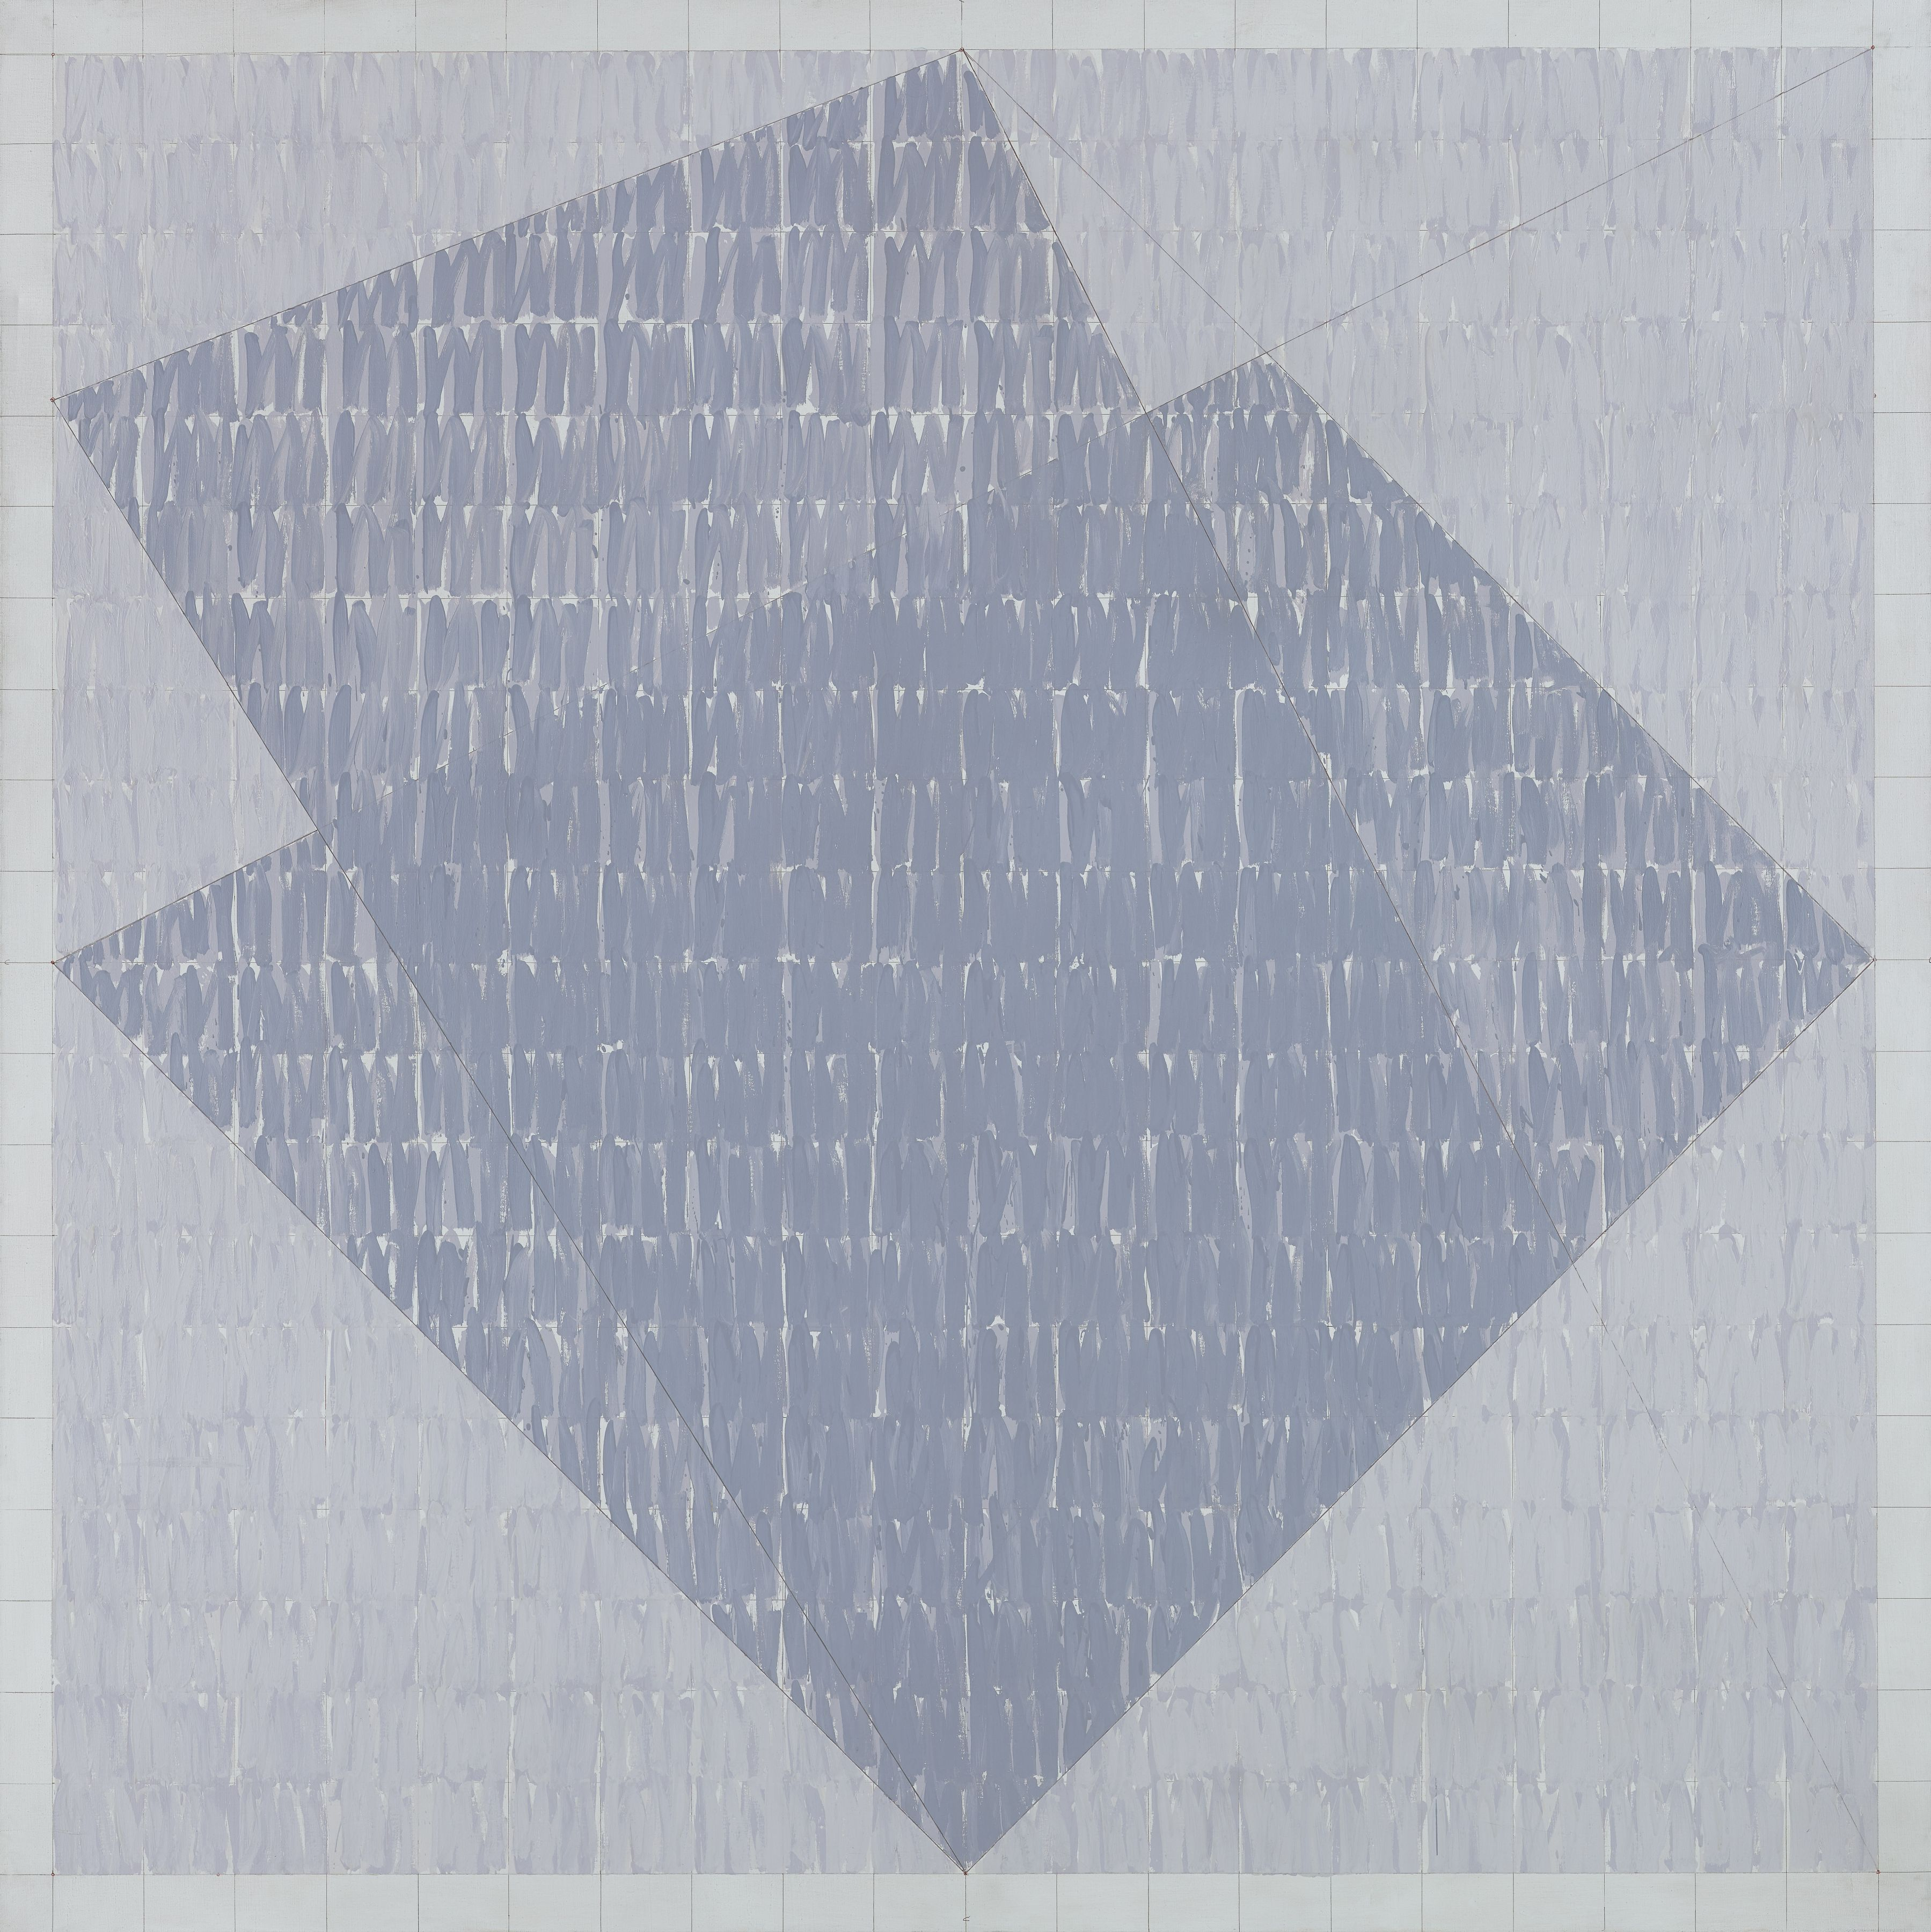 Q2-76 #1, 1976, Oil on canvas